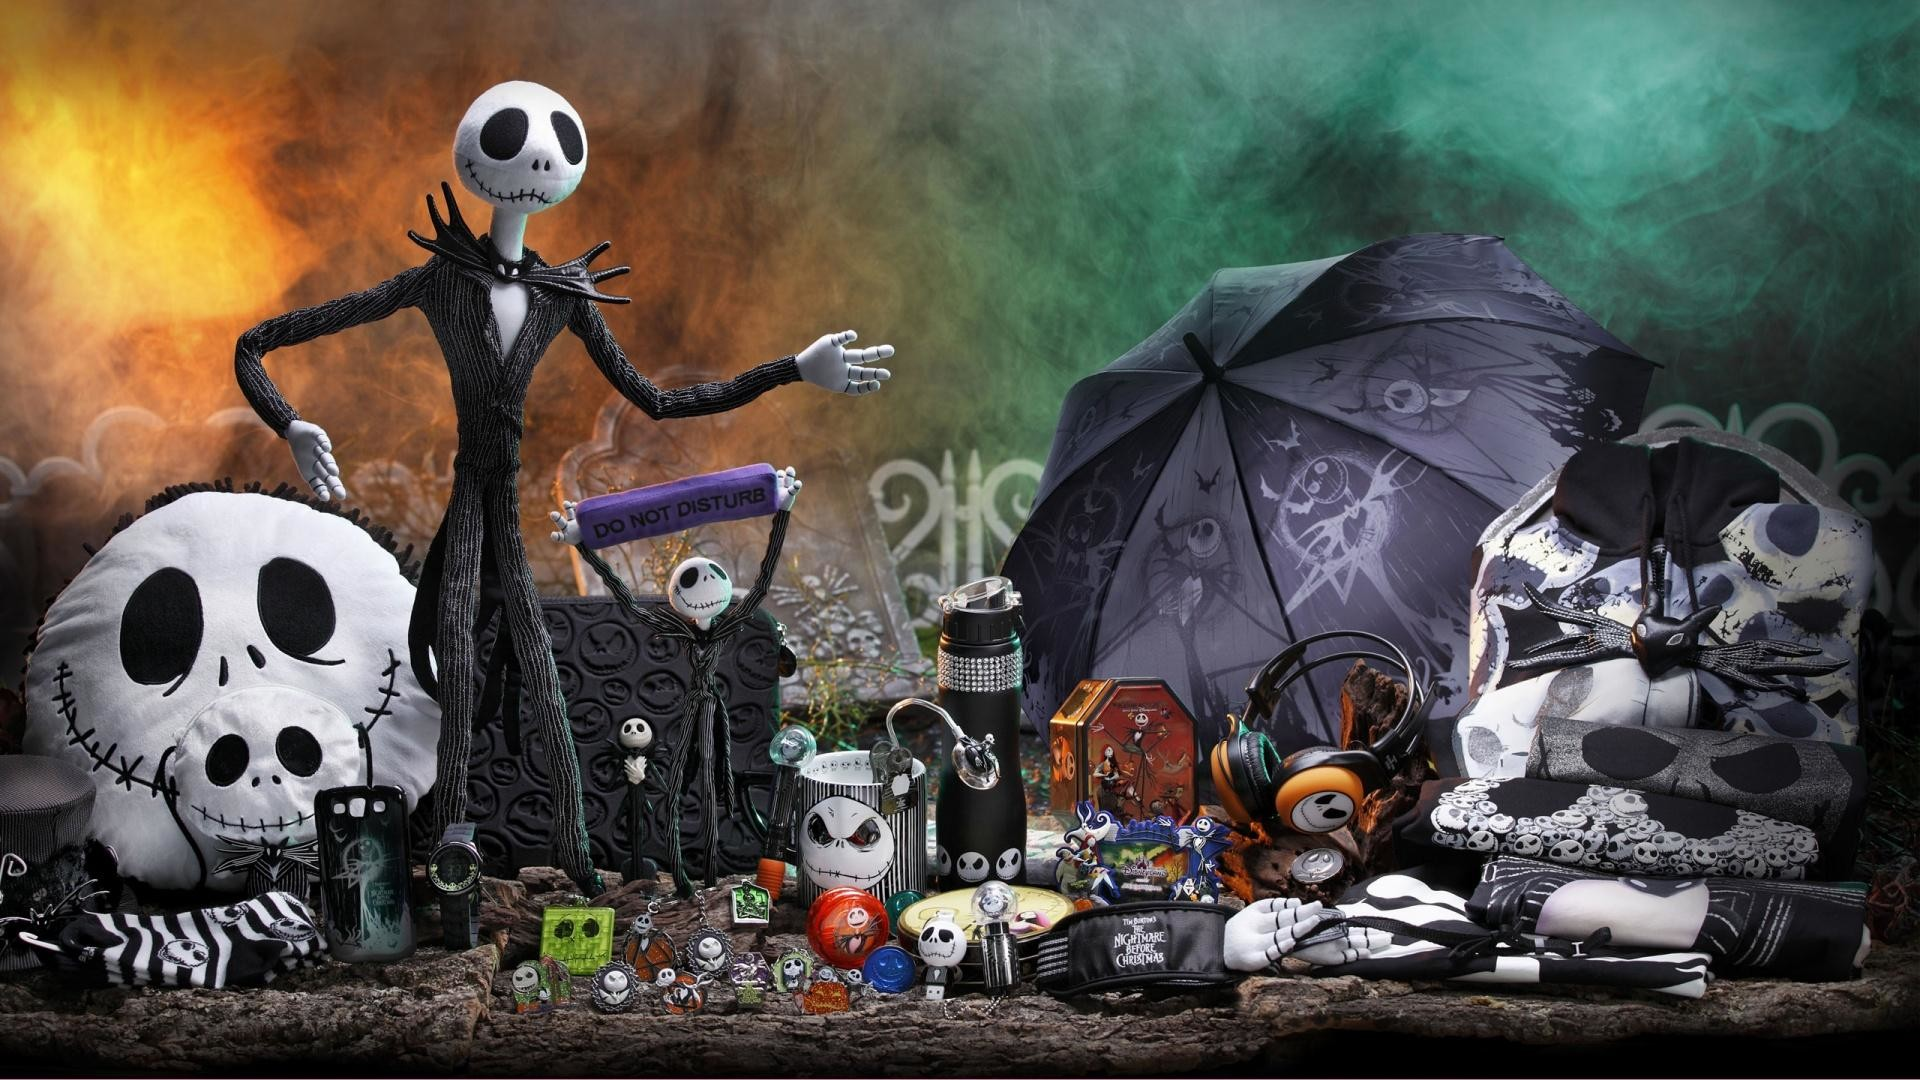 Nightmare Before Christmas Hd Wallpaper.The Nightmare Before Christmas Backgrounds 61 Pictures